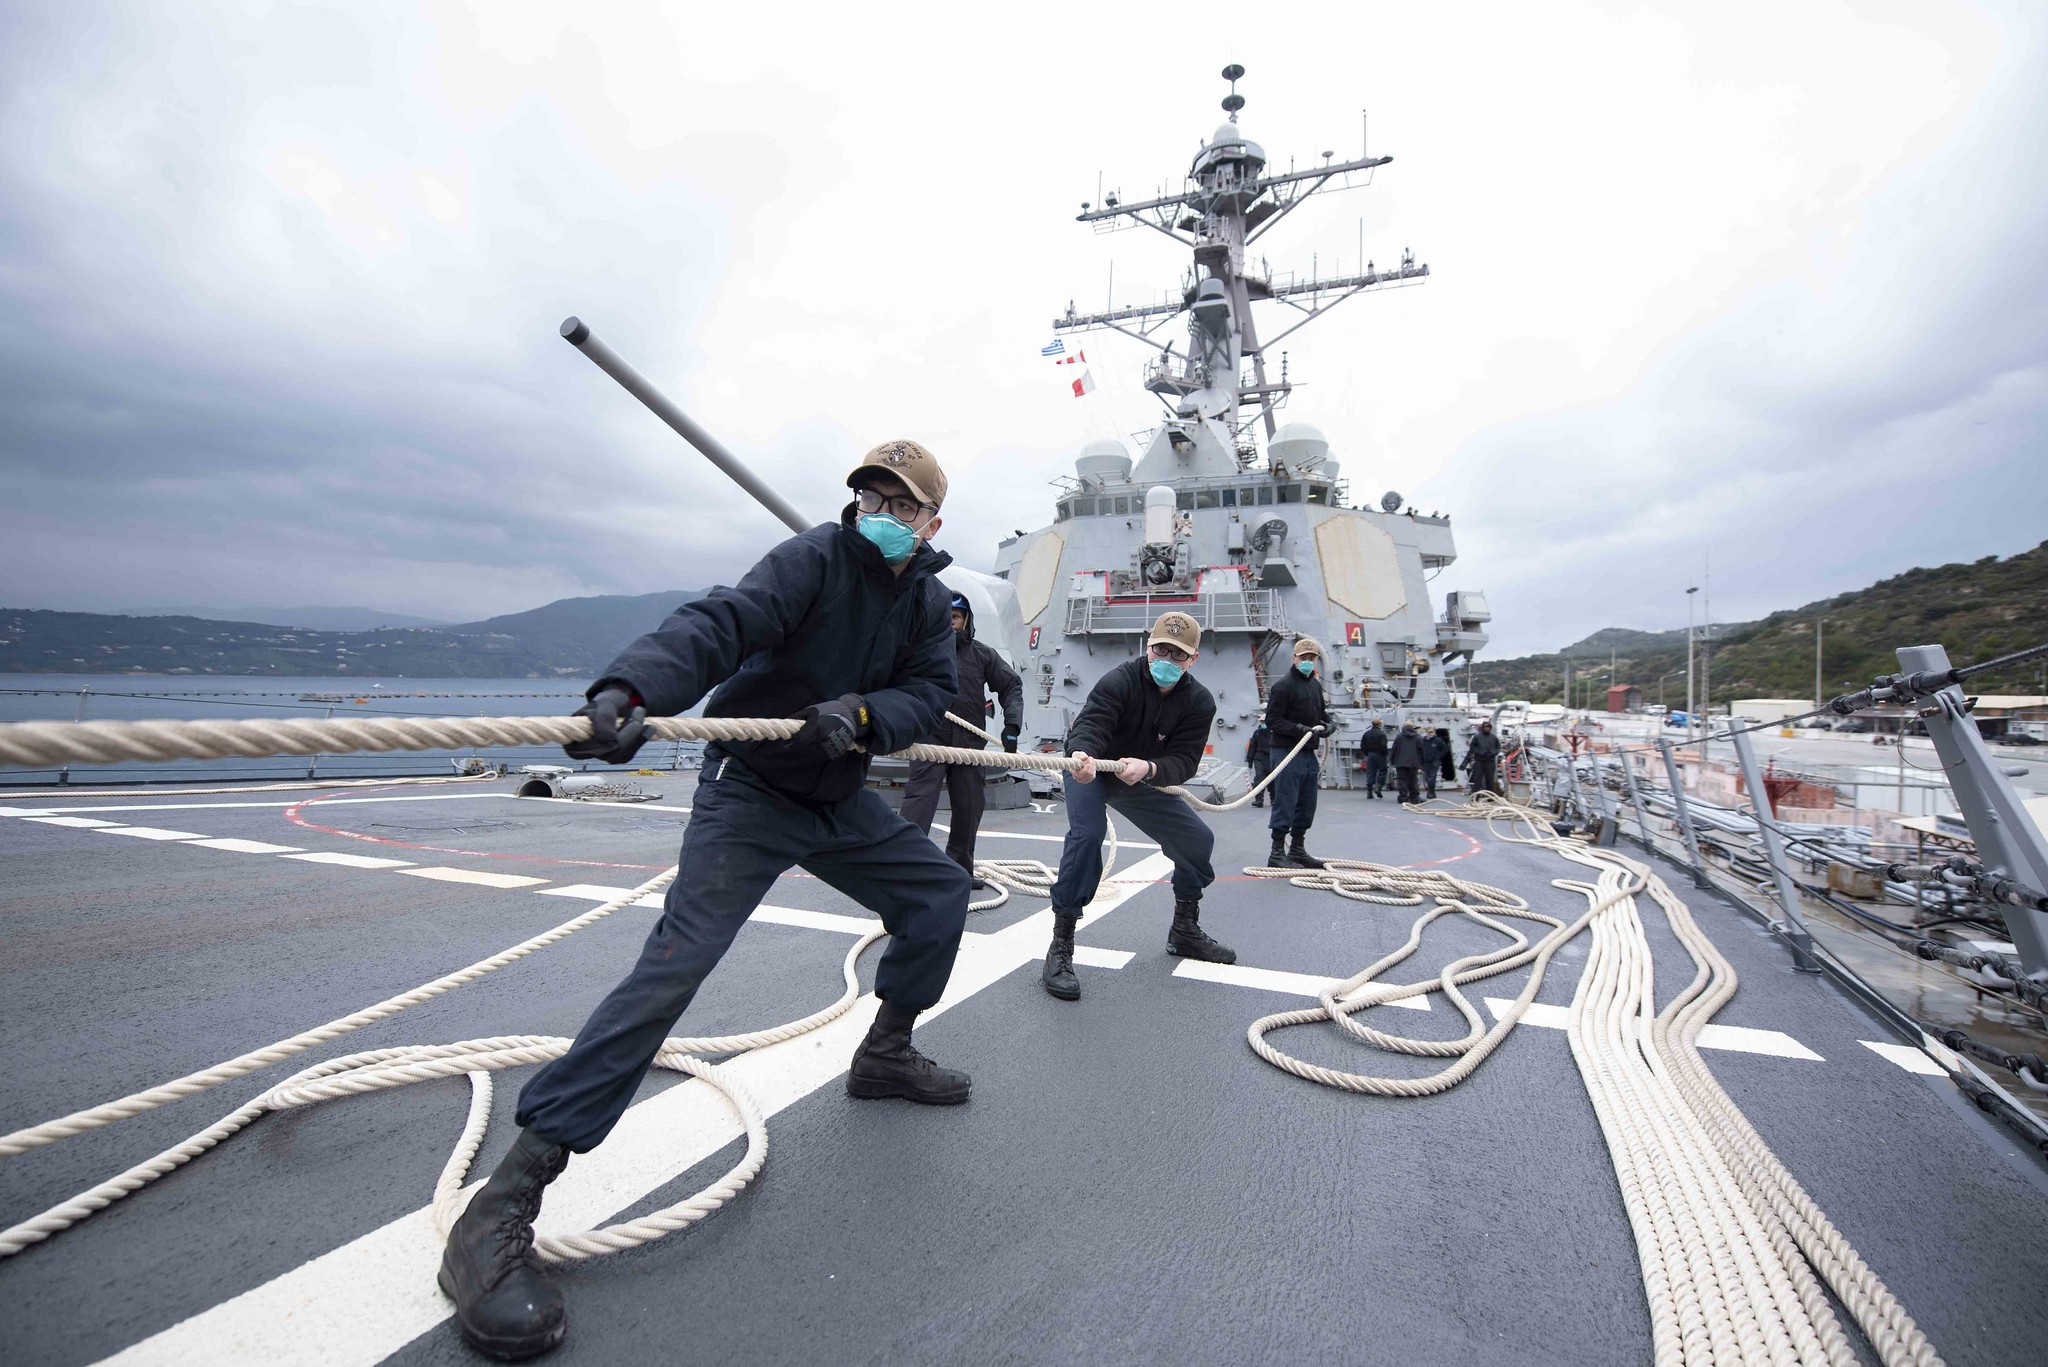 Sailors heave in line as the Arleigh Burke-class guided-missile destroyer USS Mitscher (DDG 57) prepares to depart Souda Bay, Greece, March 24, 2021. (MC2 Kaleb J. Sarten/Navy)